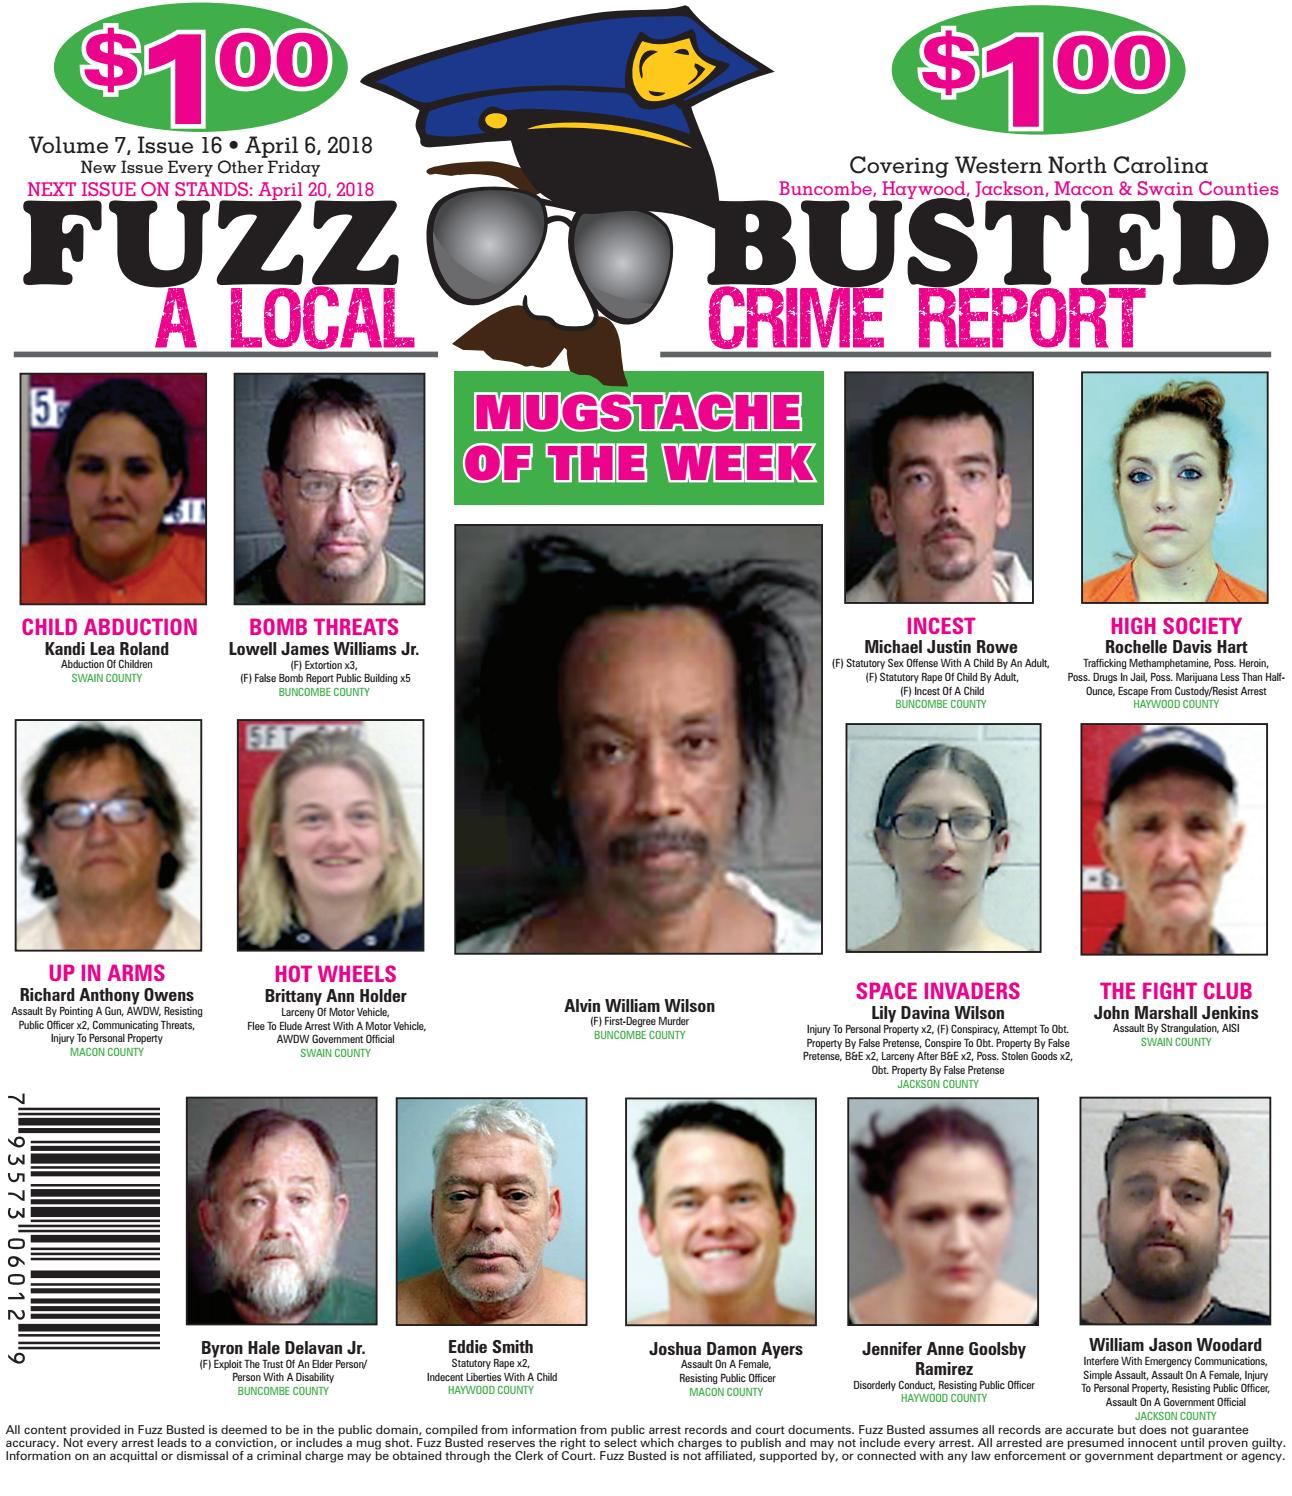 Volume 7 Issue 16 • April 06, 2018 by Fuzz Busted - issuu